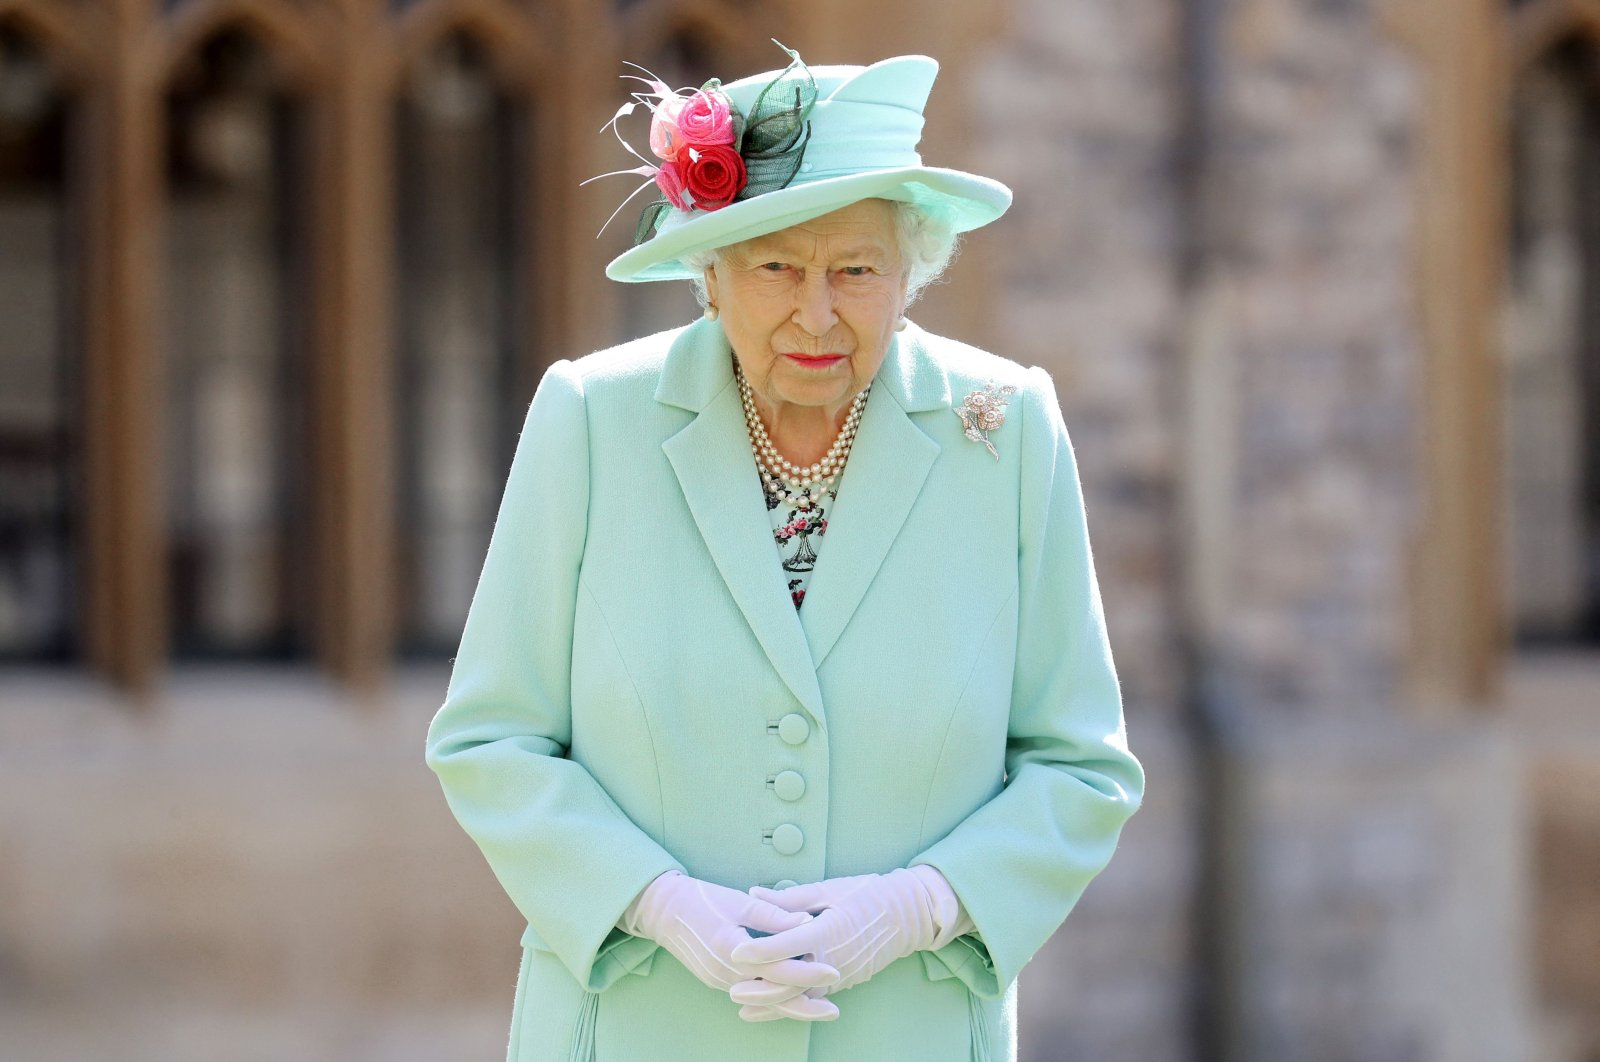 Britain's Queen Elizabeth II poses after conferring the honor of a knighthood upon 100-year-old veteran Captain Tom Moore during an investiture at Windsor Castle in Windsor, London, U.K., July 17, 2020. (AFP File Photo)